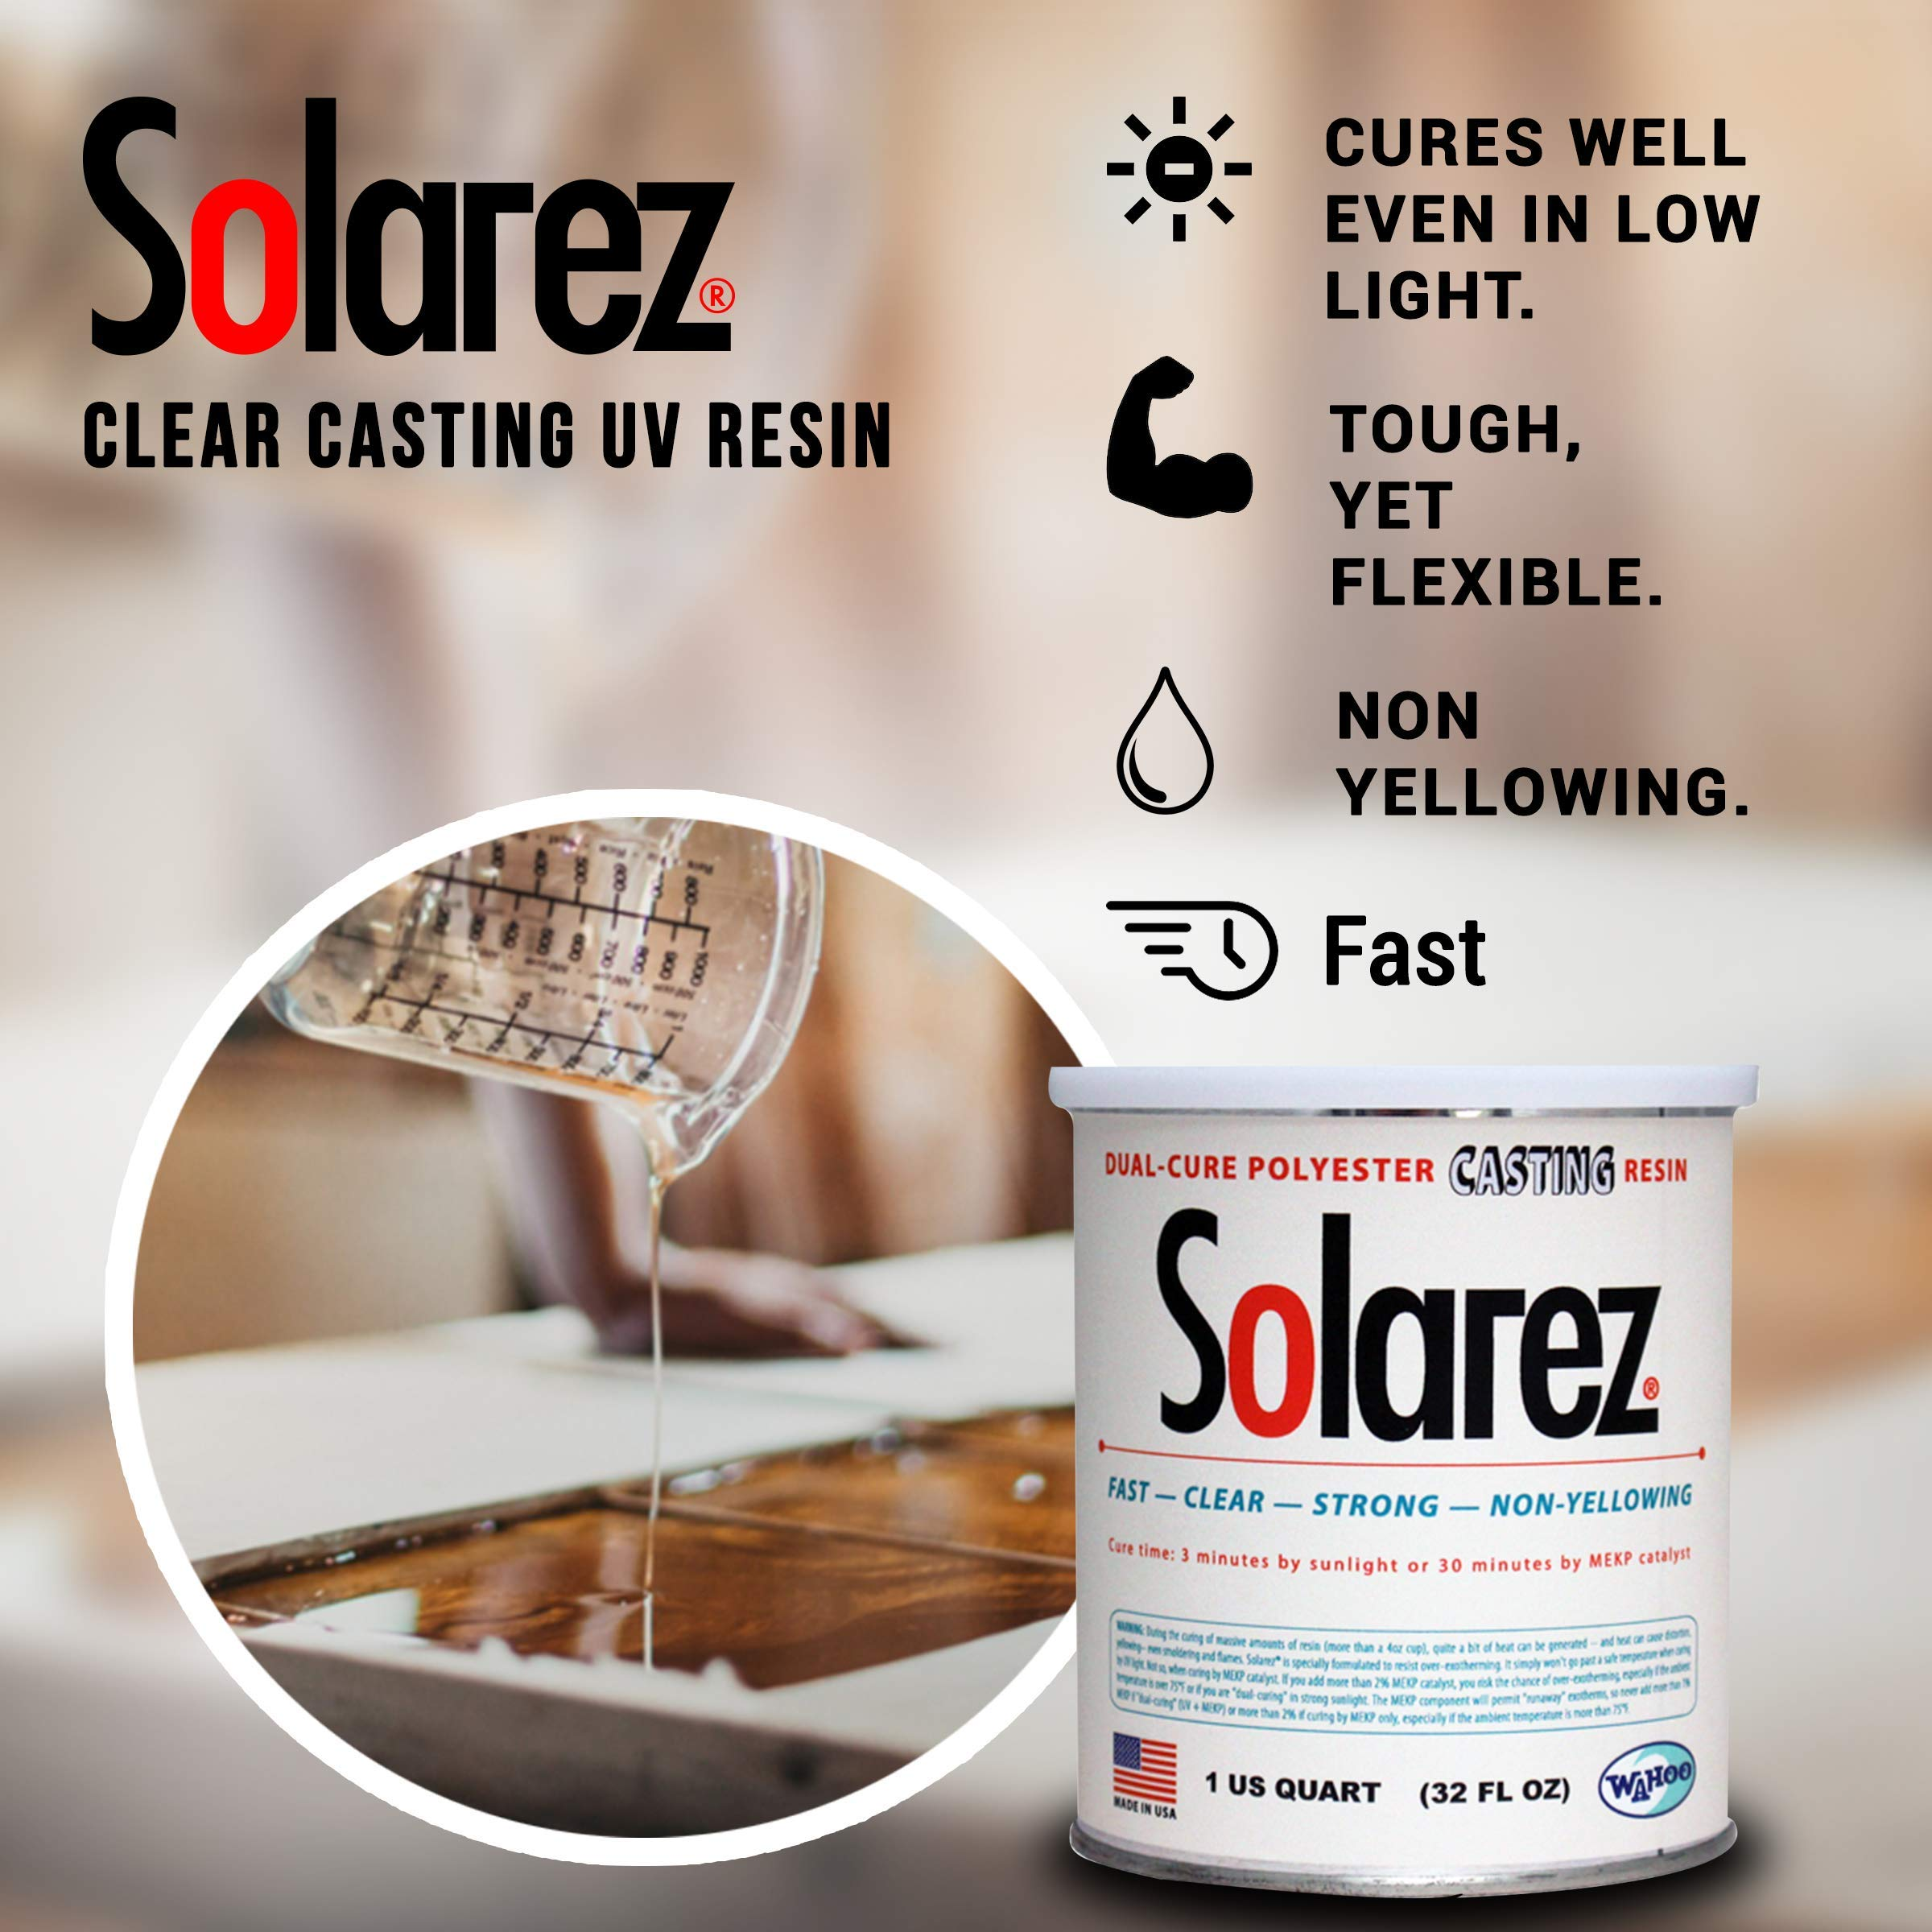 SOLAREZ UV Cure Clear Casting Resin (Gallon) for DIY Jewelry, Hobby, Craft Decoration Making - Crystal Clear Solar Cure Molding and Casting Resin